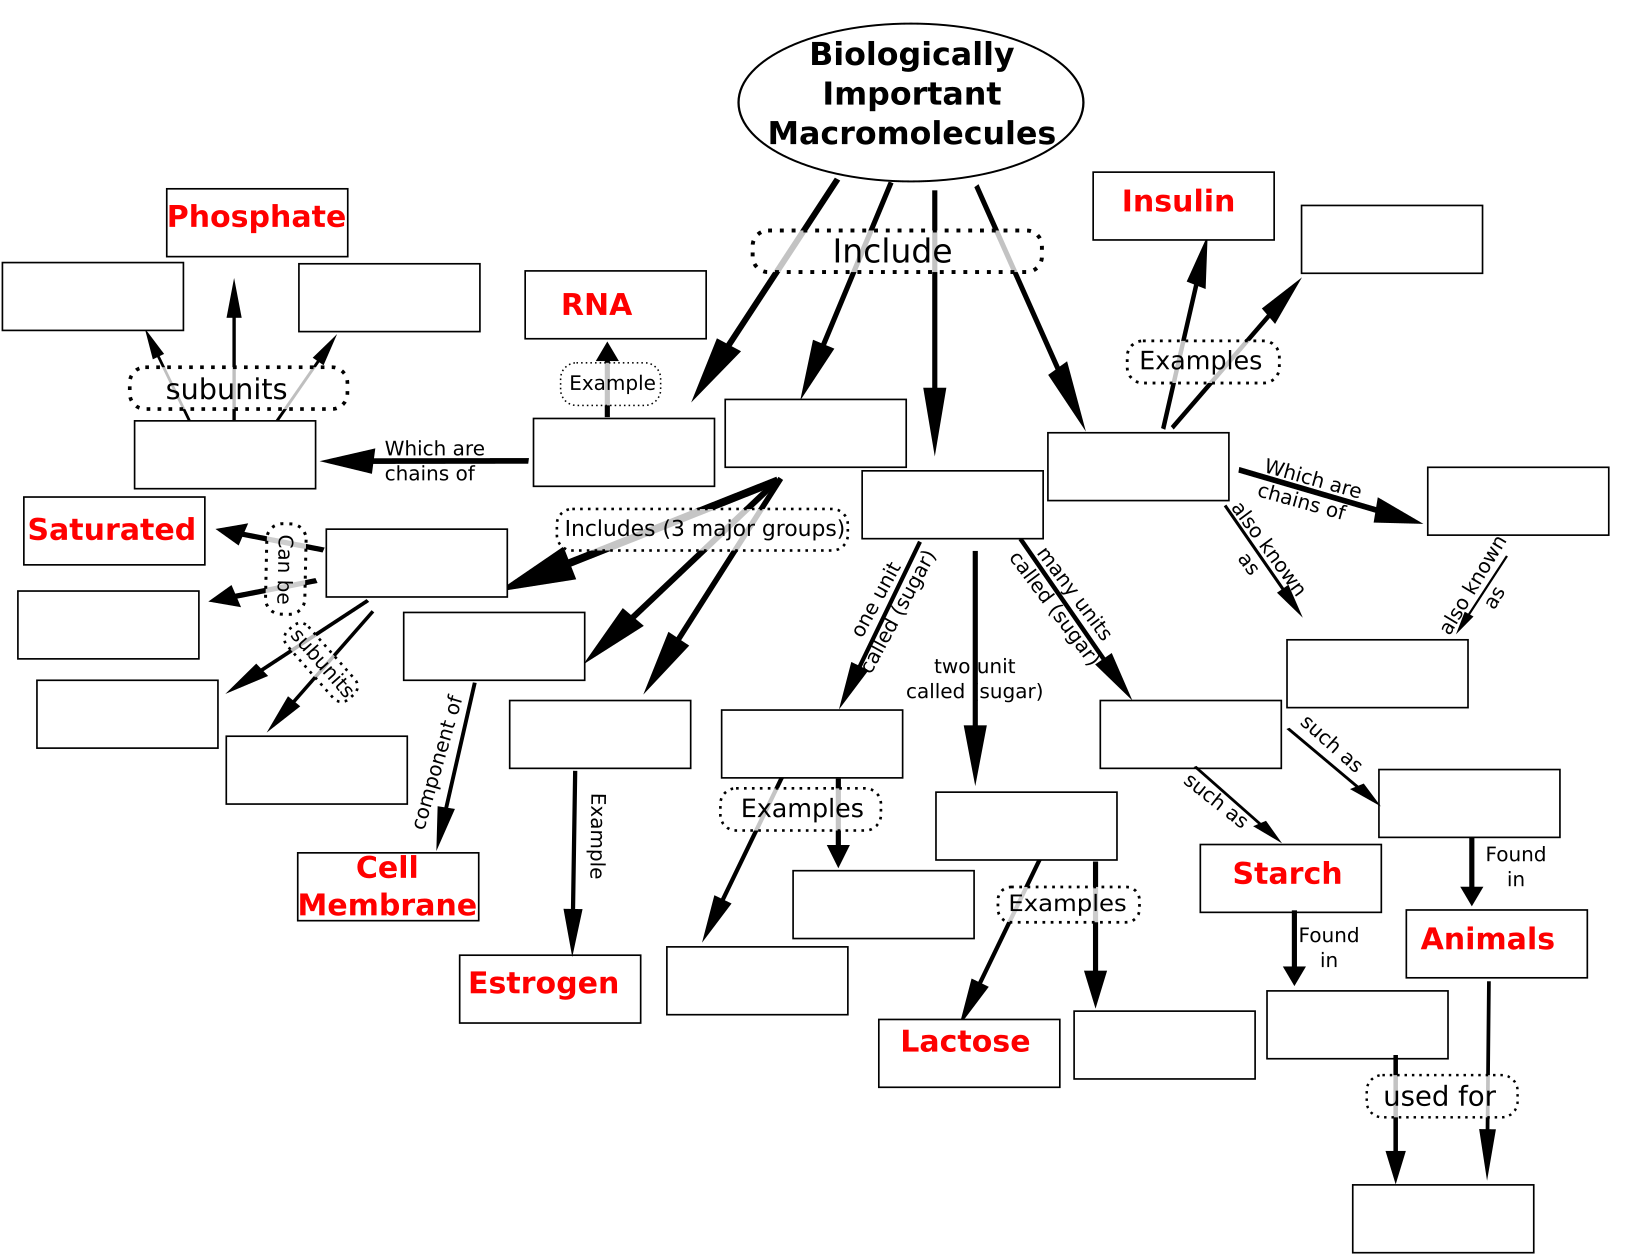 Concept Map Of Macromolecules.Biological Macromolecules Concept Biology Oer